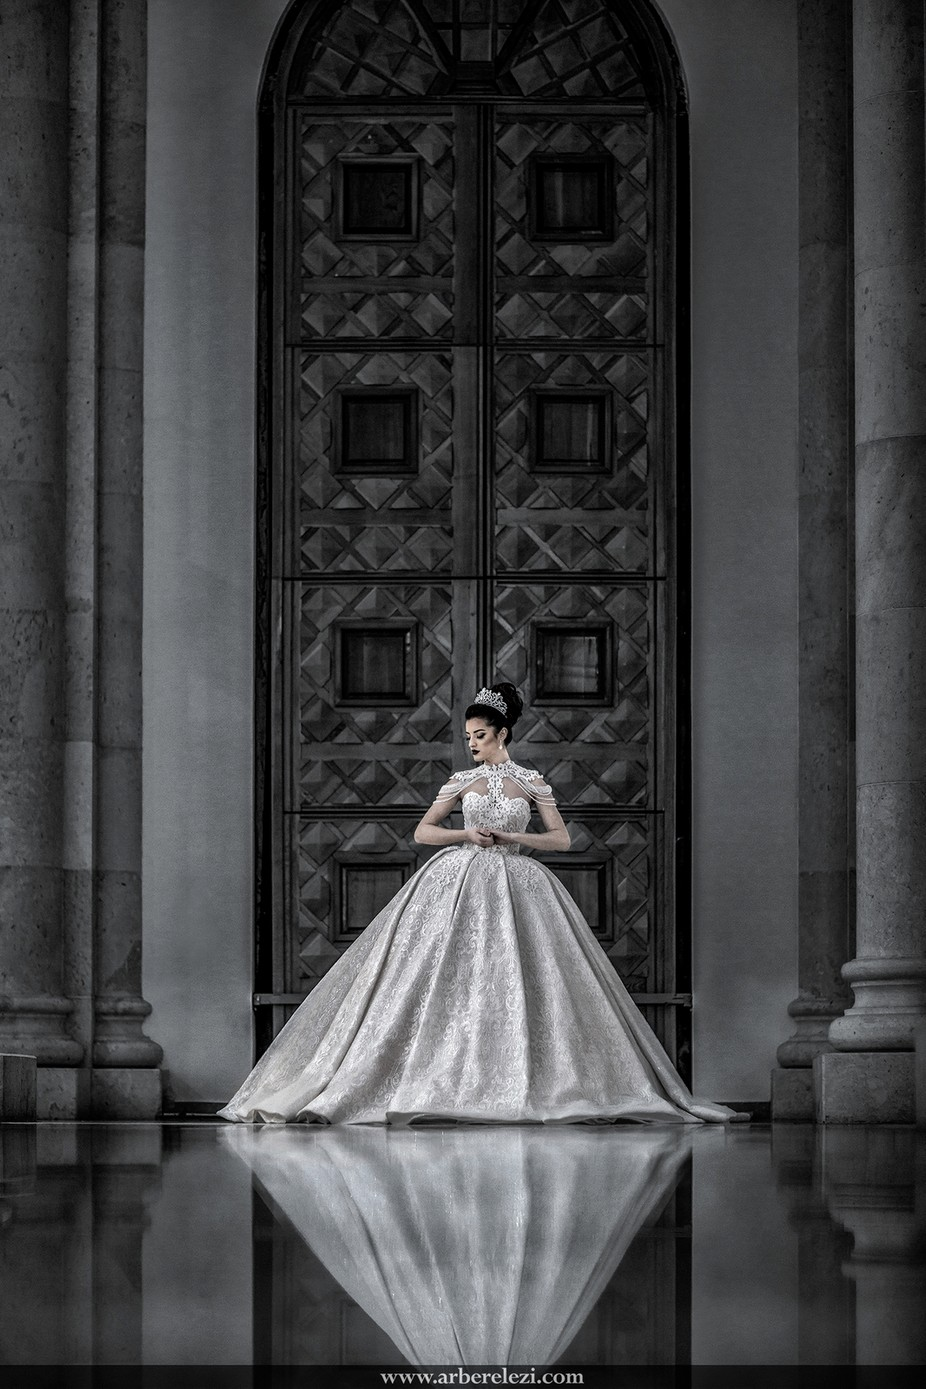 Bridal Shot by ArberElezi - Monthly Pro Photo Contest Vol 44